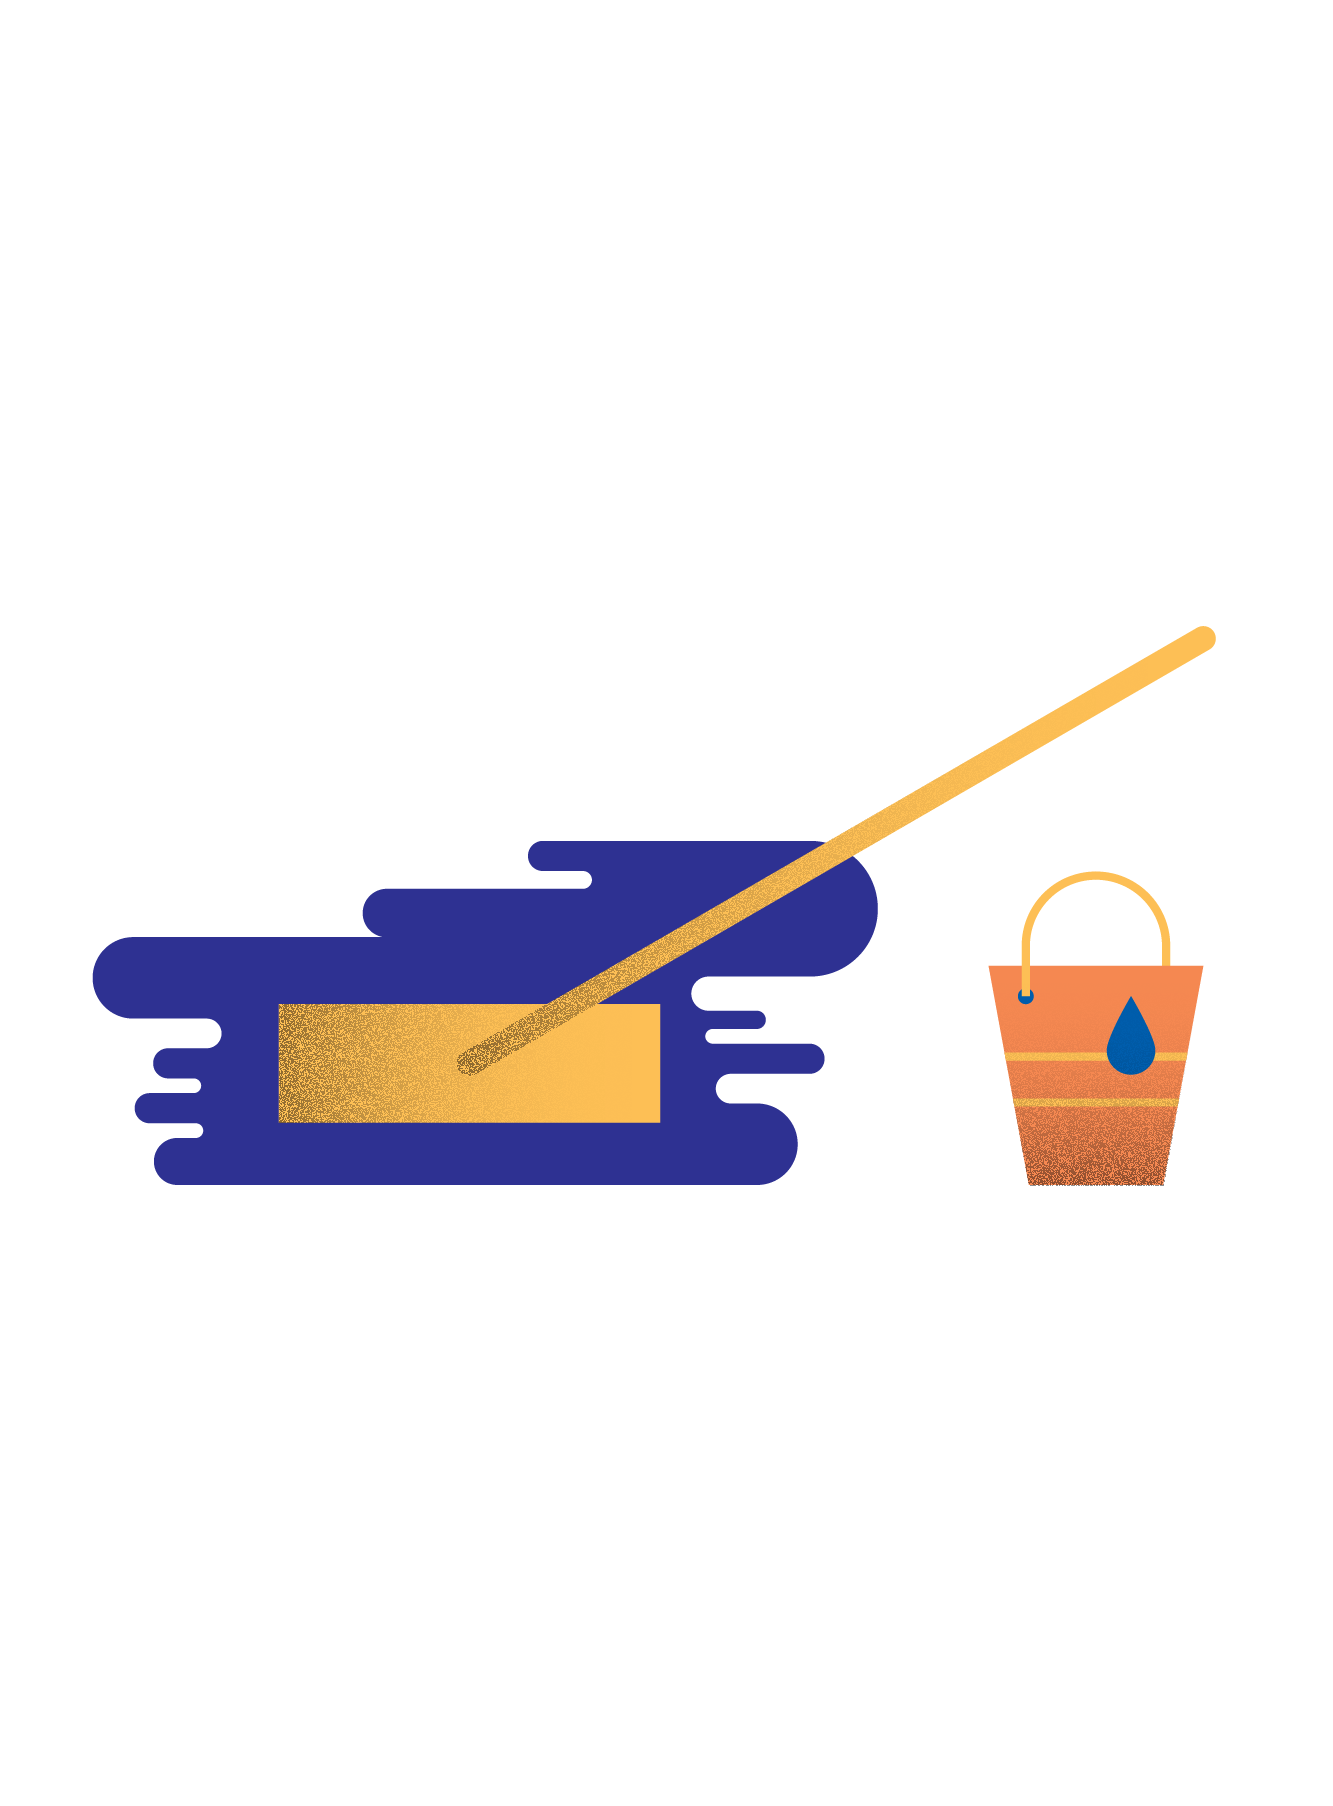 Illustration of a mop and a bucket